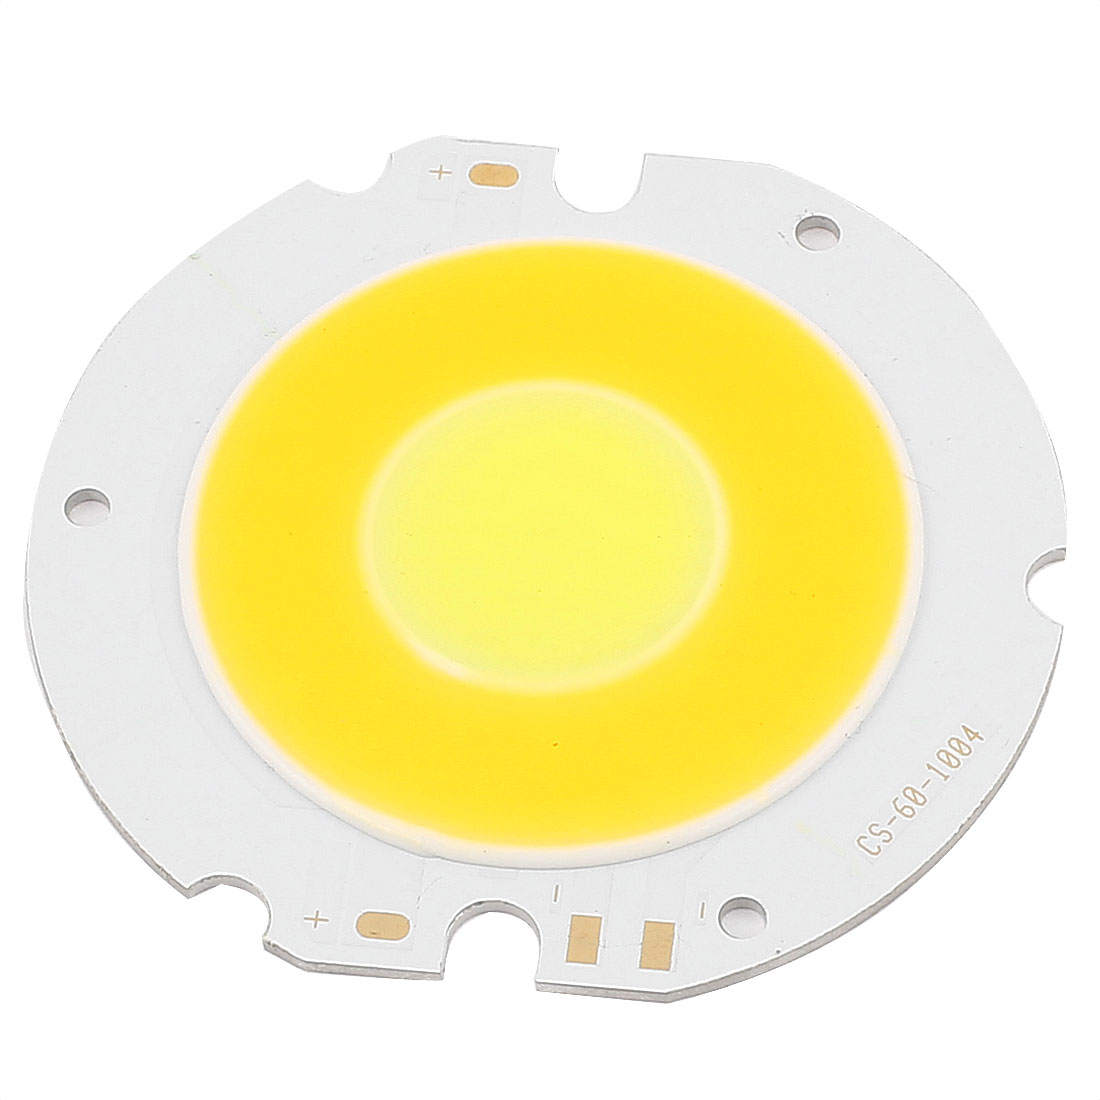 20W DC30-36V 600mA 80-100LM/W Warm White LED Light COB Lamp Bead Chip